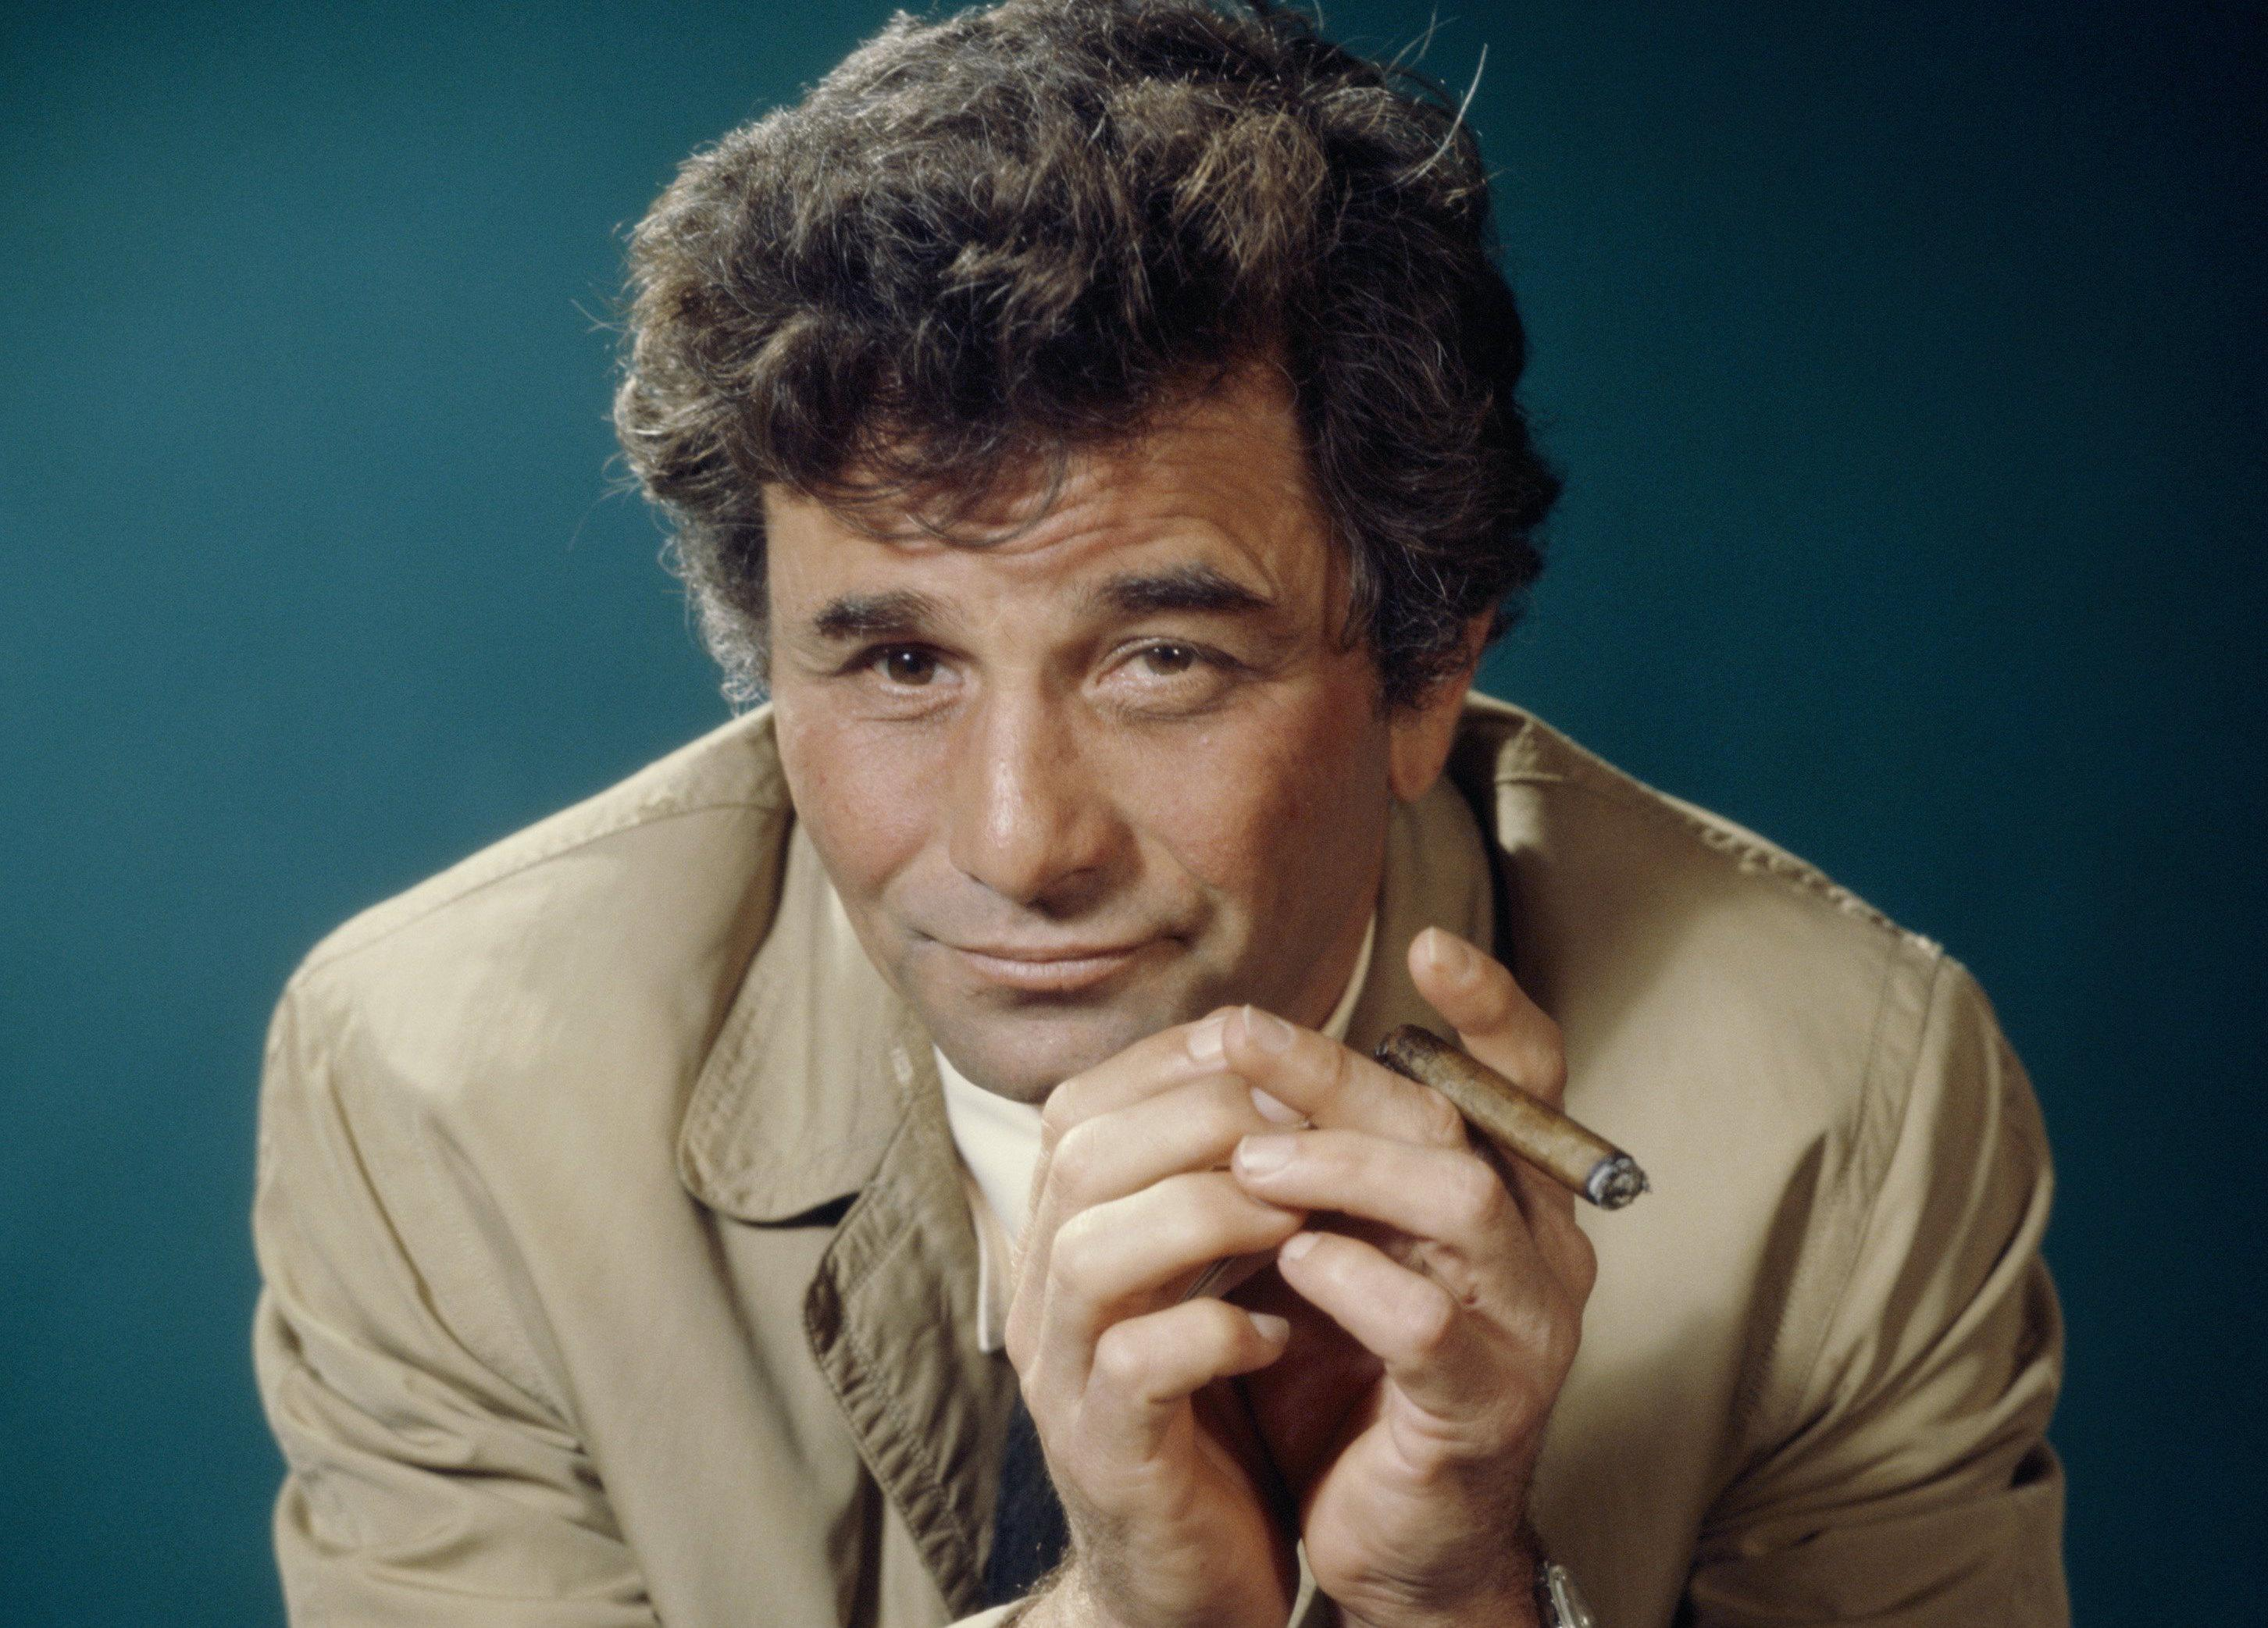 Lt Columbo – FREE HD WALLPAPERS